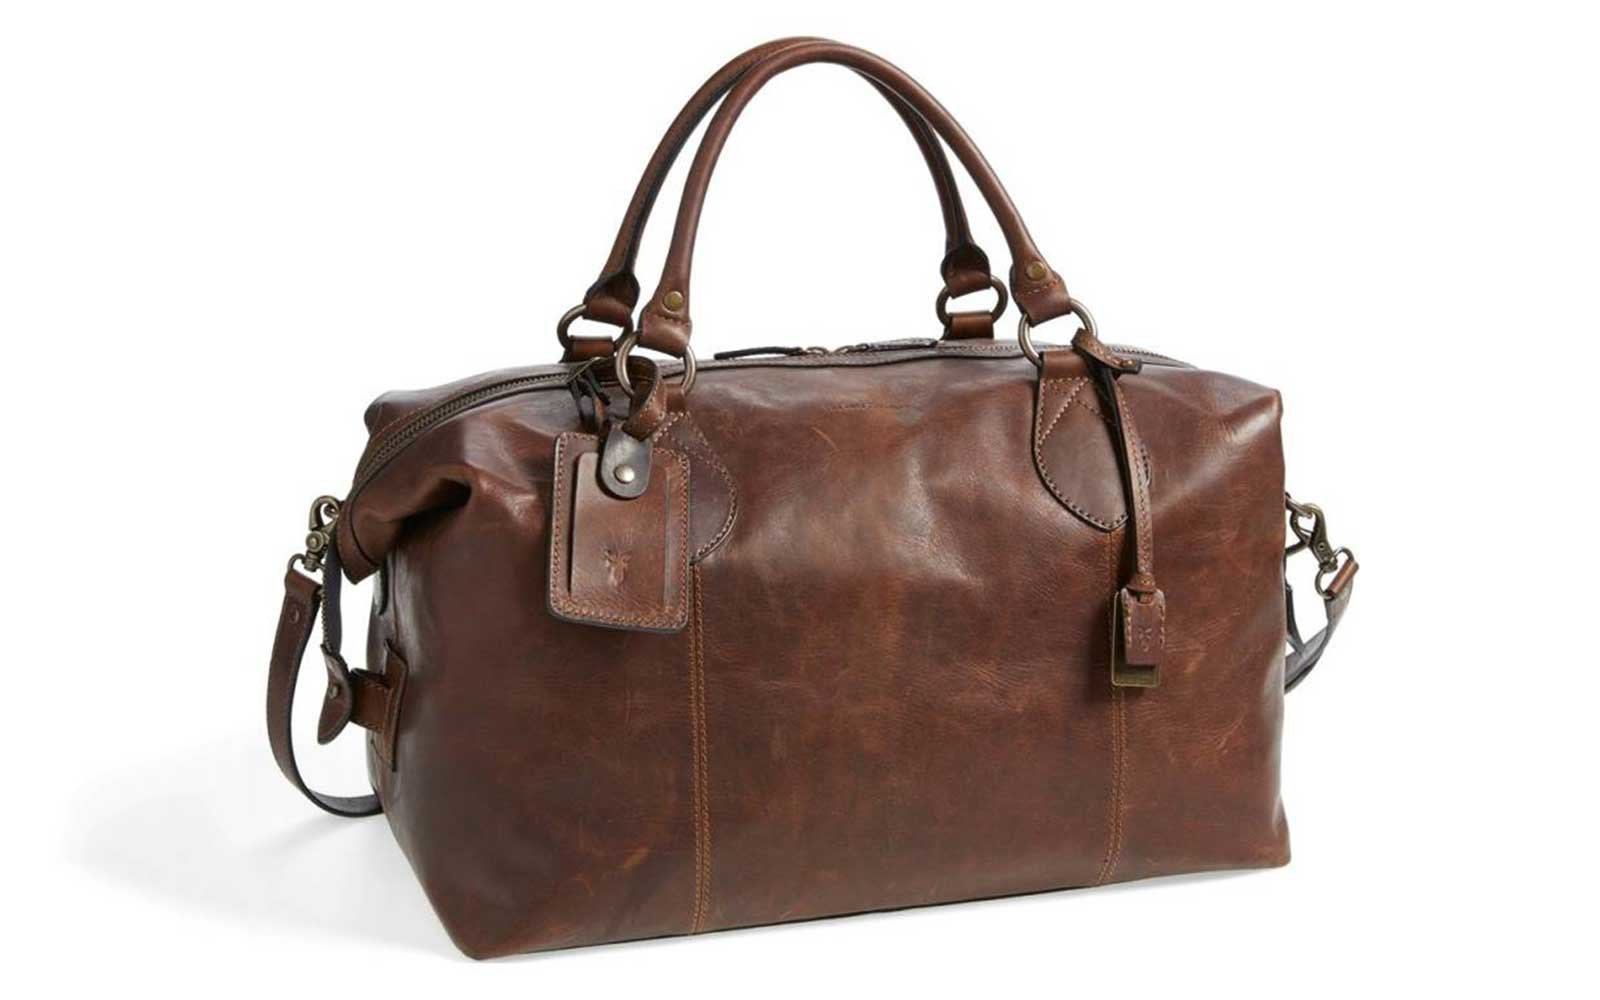 Frye Duffel Bag for Travel